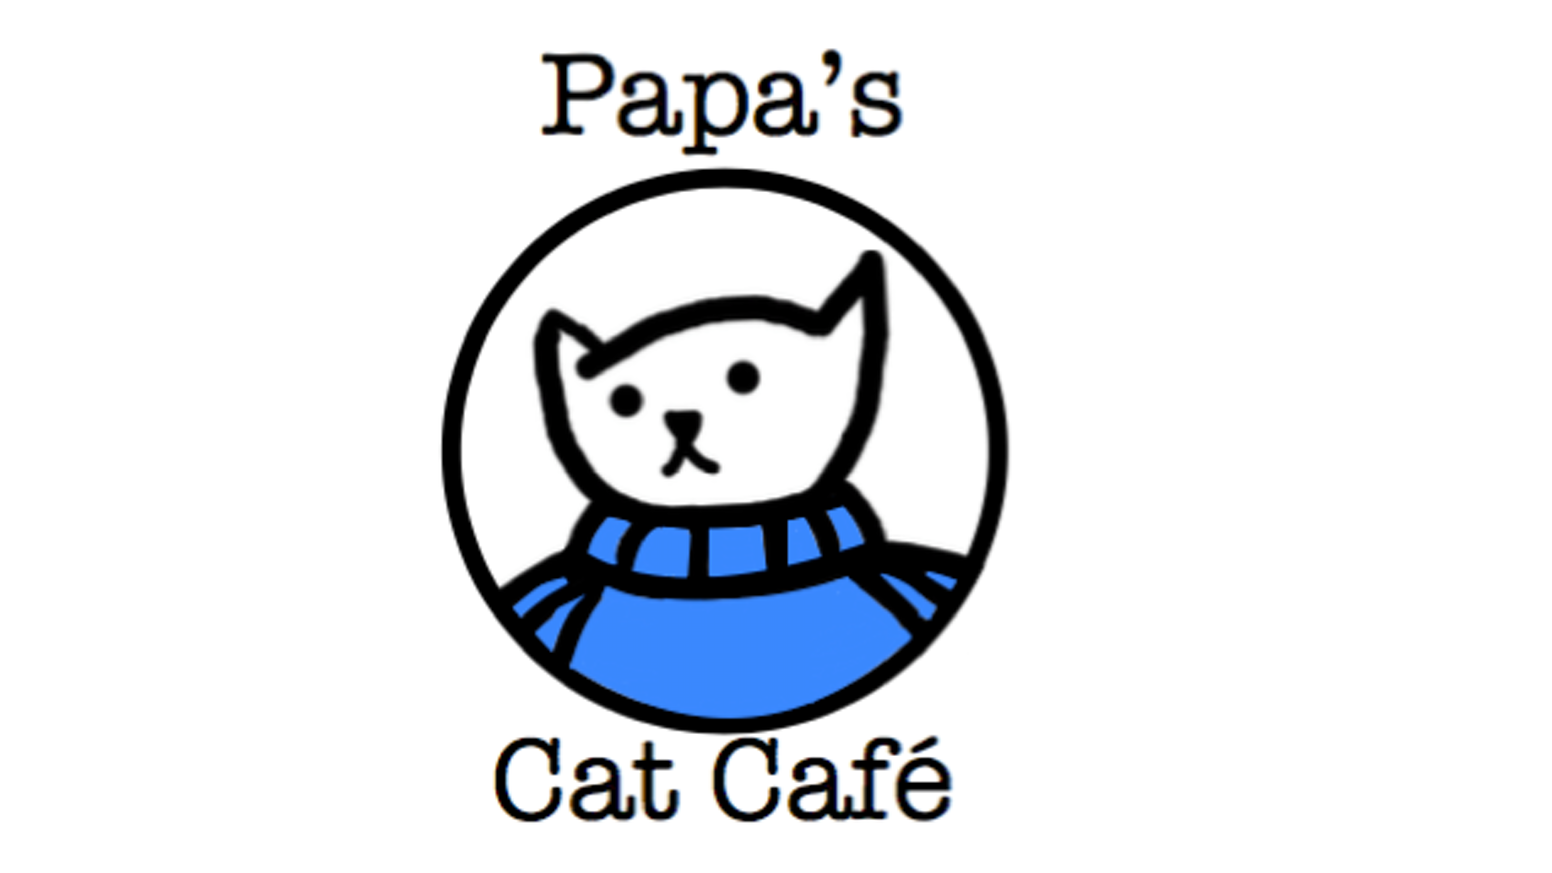 Our vision is to offer a small but delicious variety of coffee and other beverages, baked goods, and quality feline interaction.